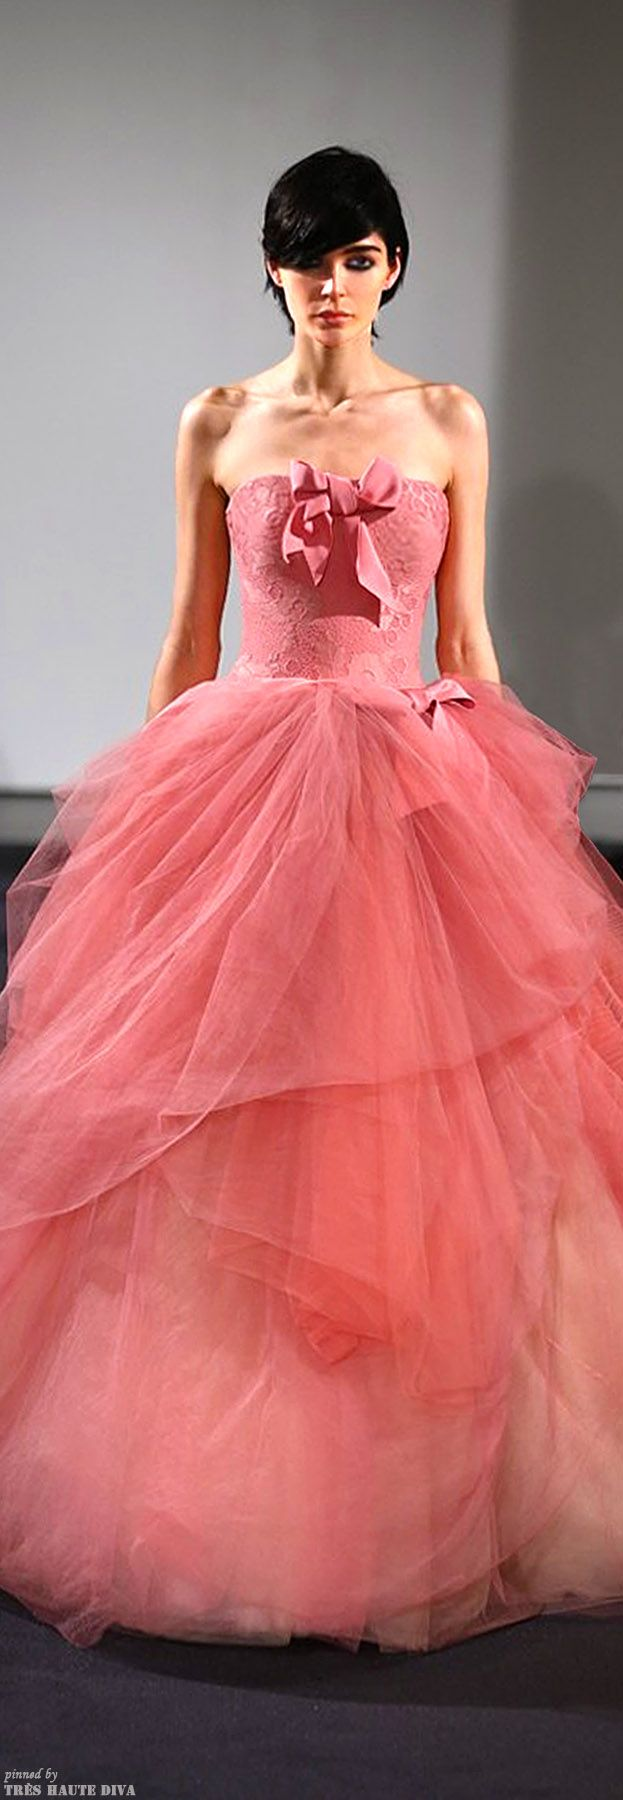 best Vera Wang images on Pinterest  Dream dress High fashion